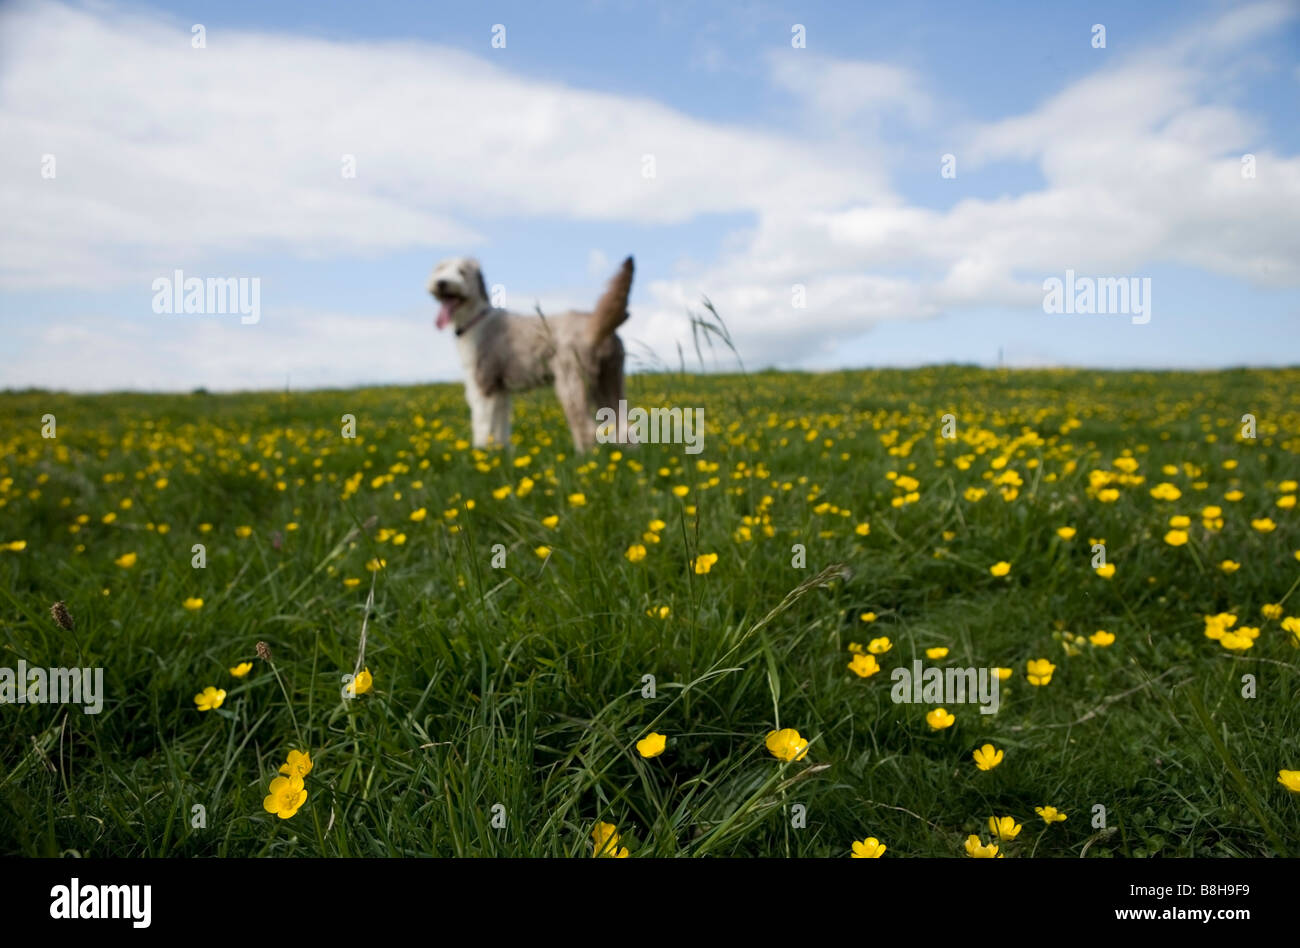 Bearded collie running standing in a meadow - Stock Image